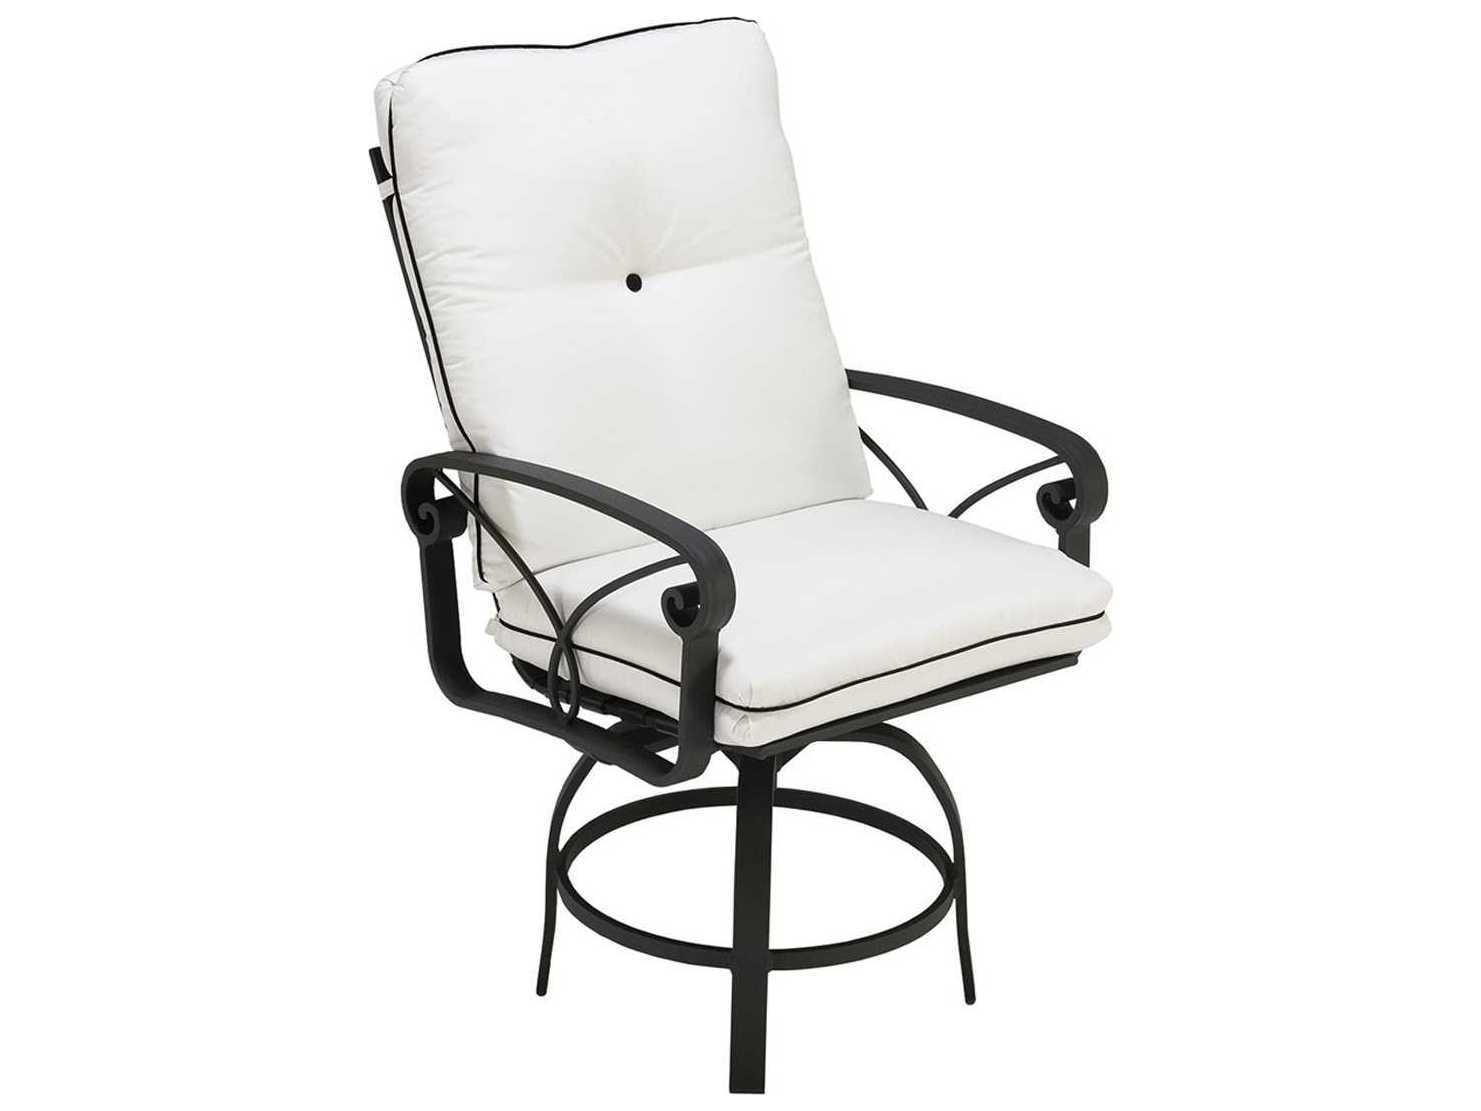 Winston Palazzo Sling Cast Aluminum Arm Chaise Lounge: Winston Palazzo Cushion Cast Aluminum Swivel Balcony